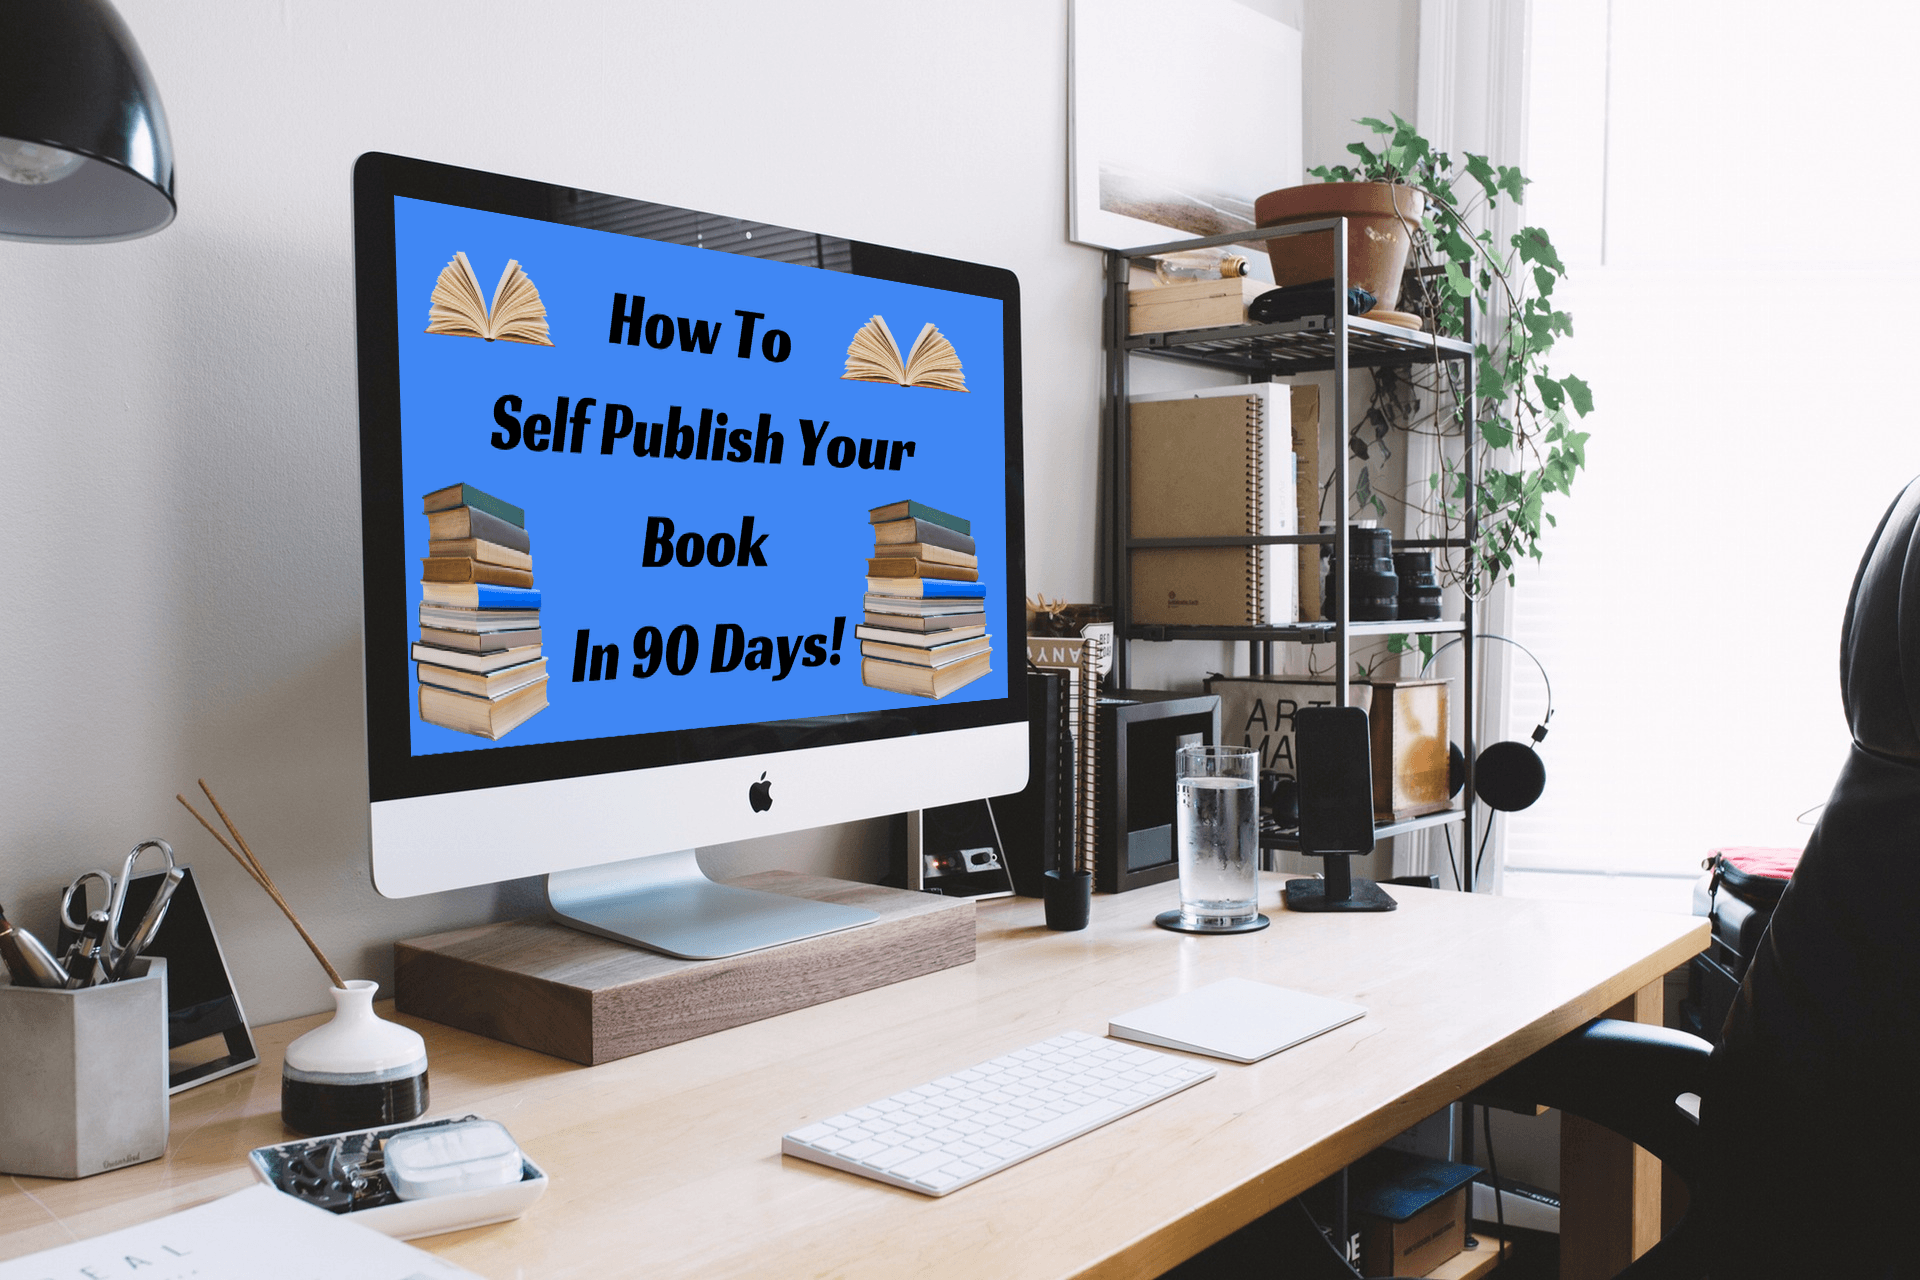 Learn how to self publish your books